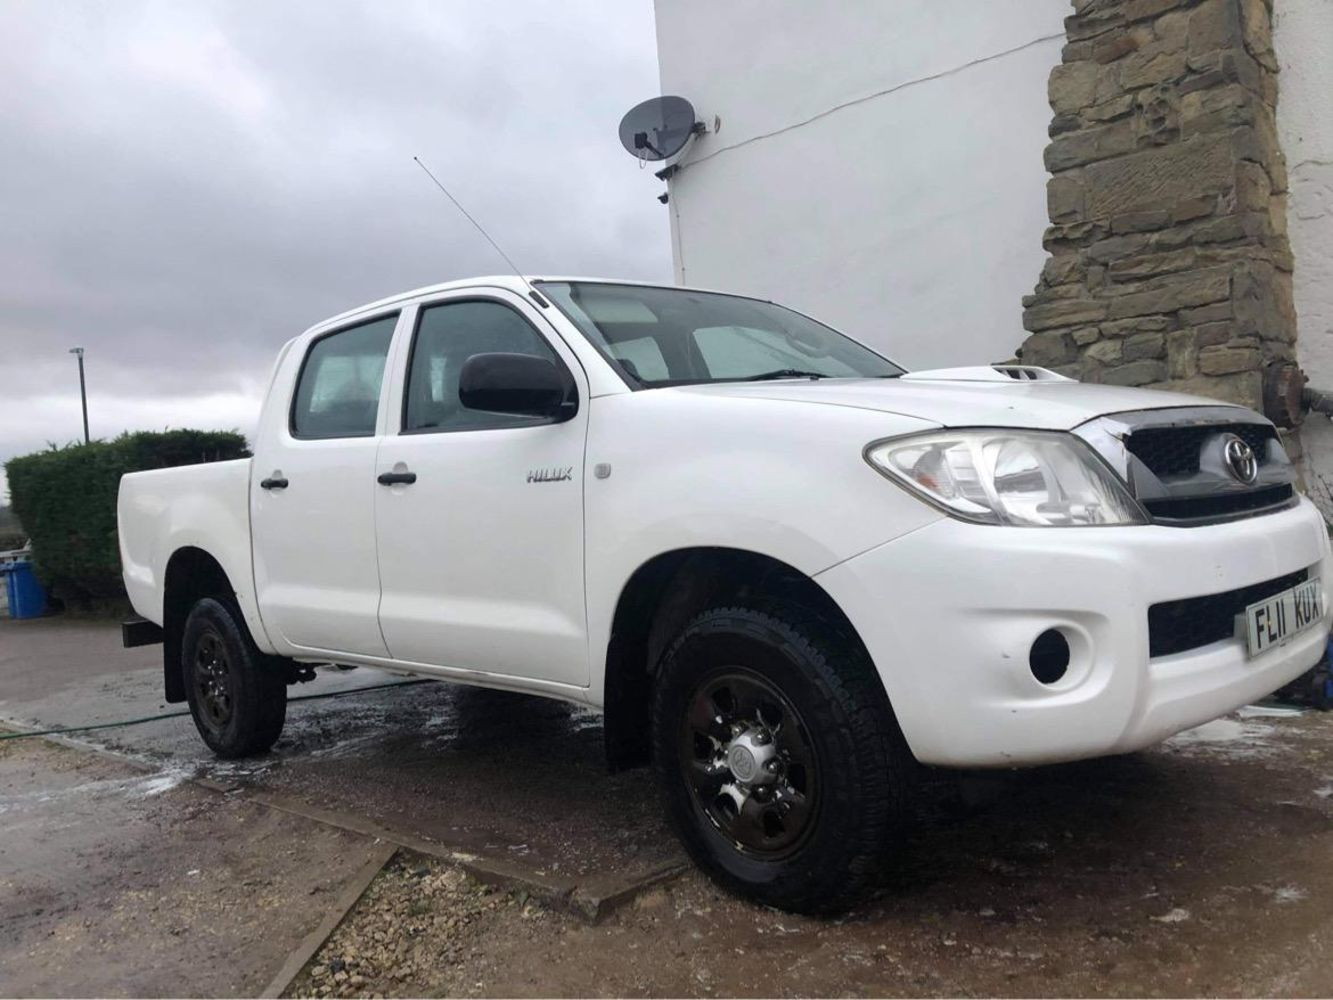 2011 TOYOTA HILUX HL2 D-4D 4X4 DCB, CHAINSAW, TAKEUCHI MINI DIGGER, 9CT GOLD CUBAN LINK BRACELET, YAMAHA R6 BIKE & MORE Ends TUESDAY FROM 7PM